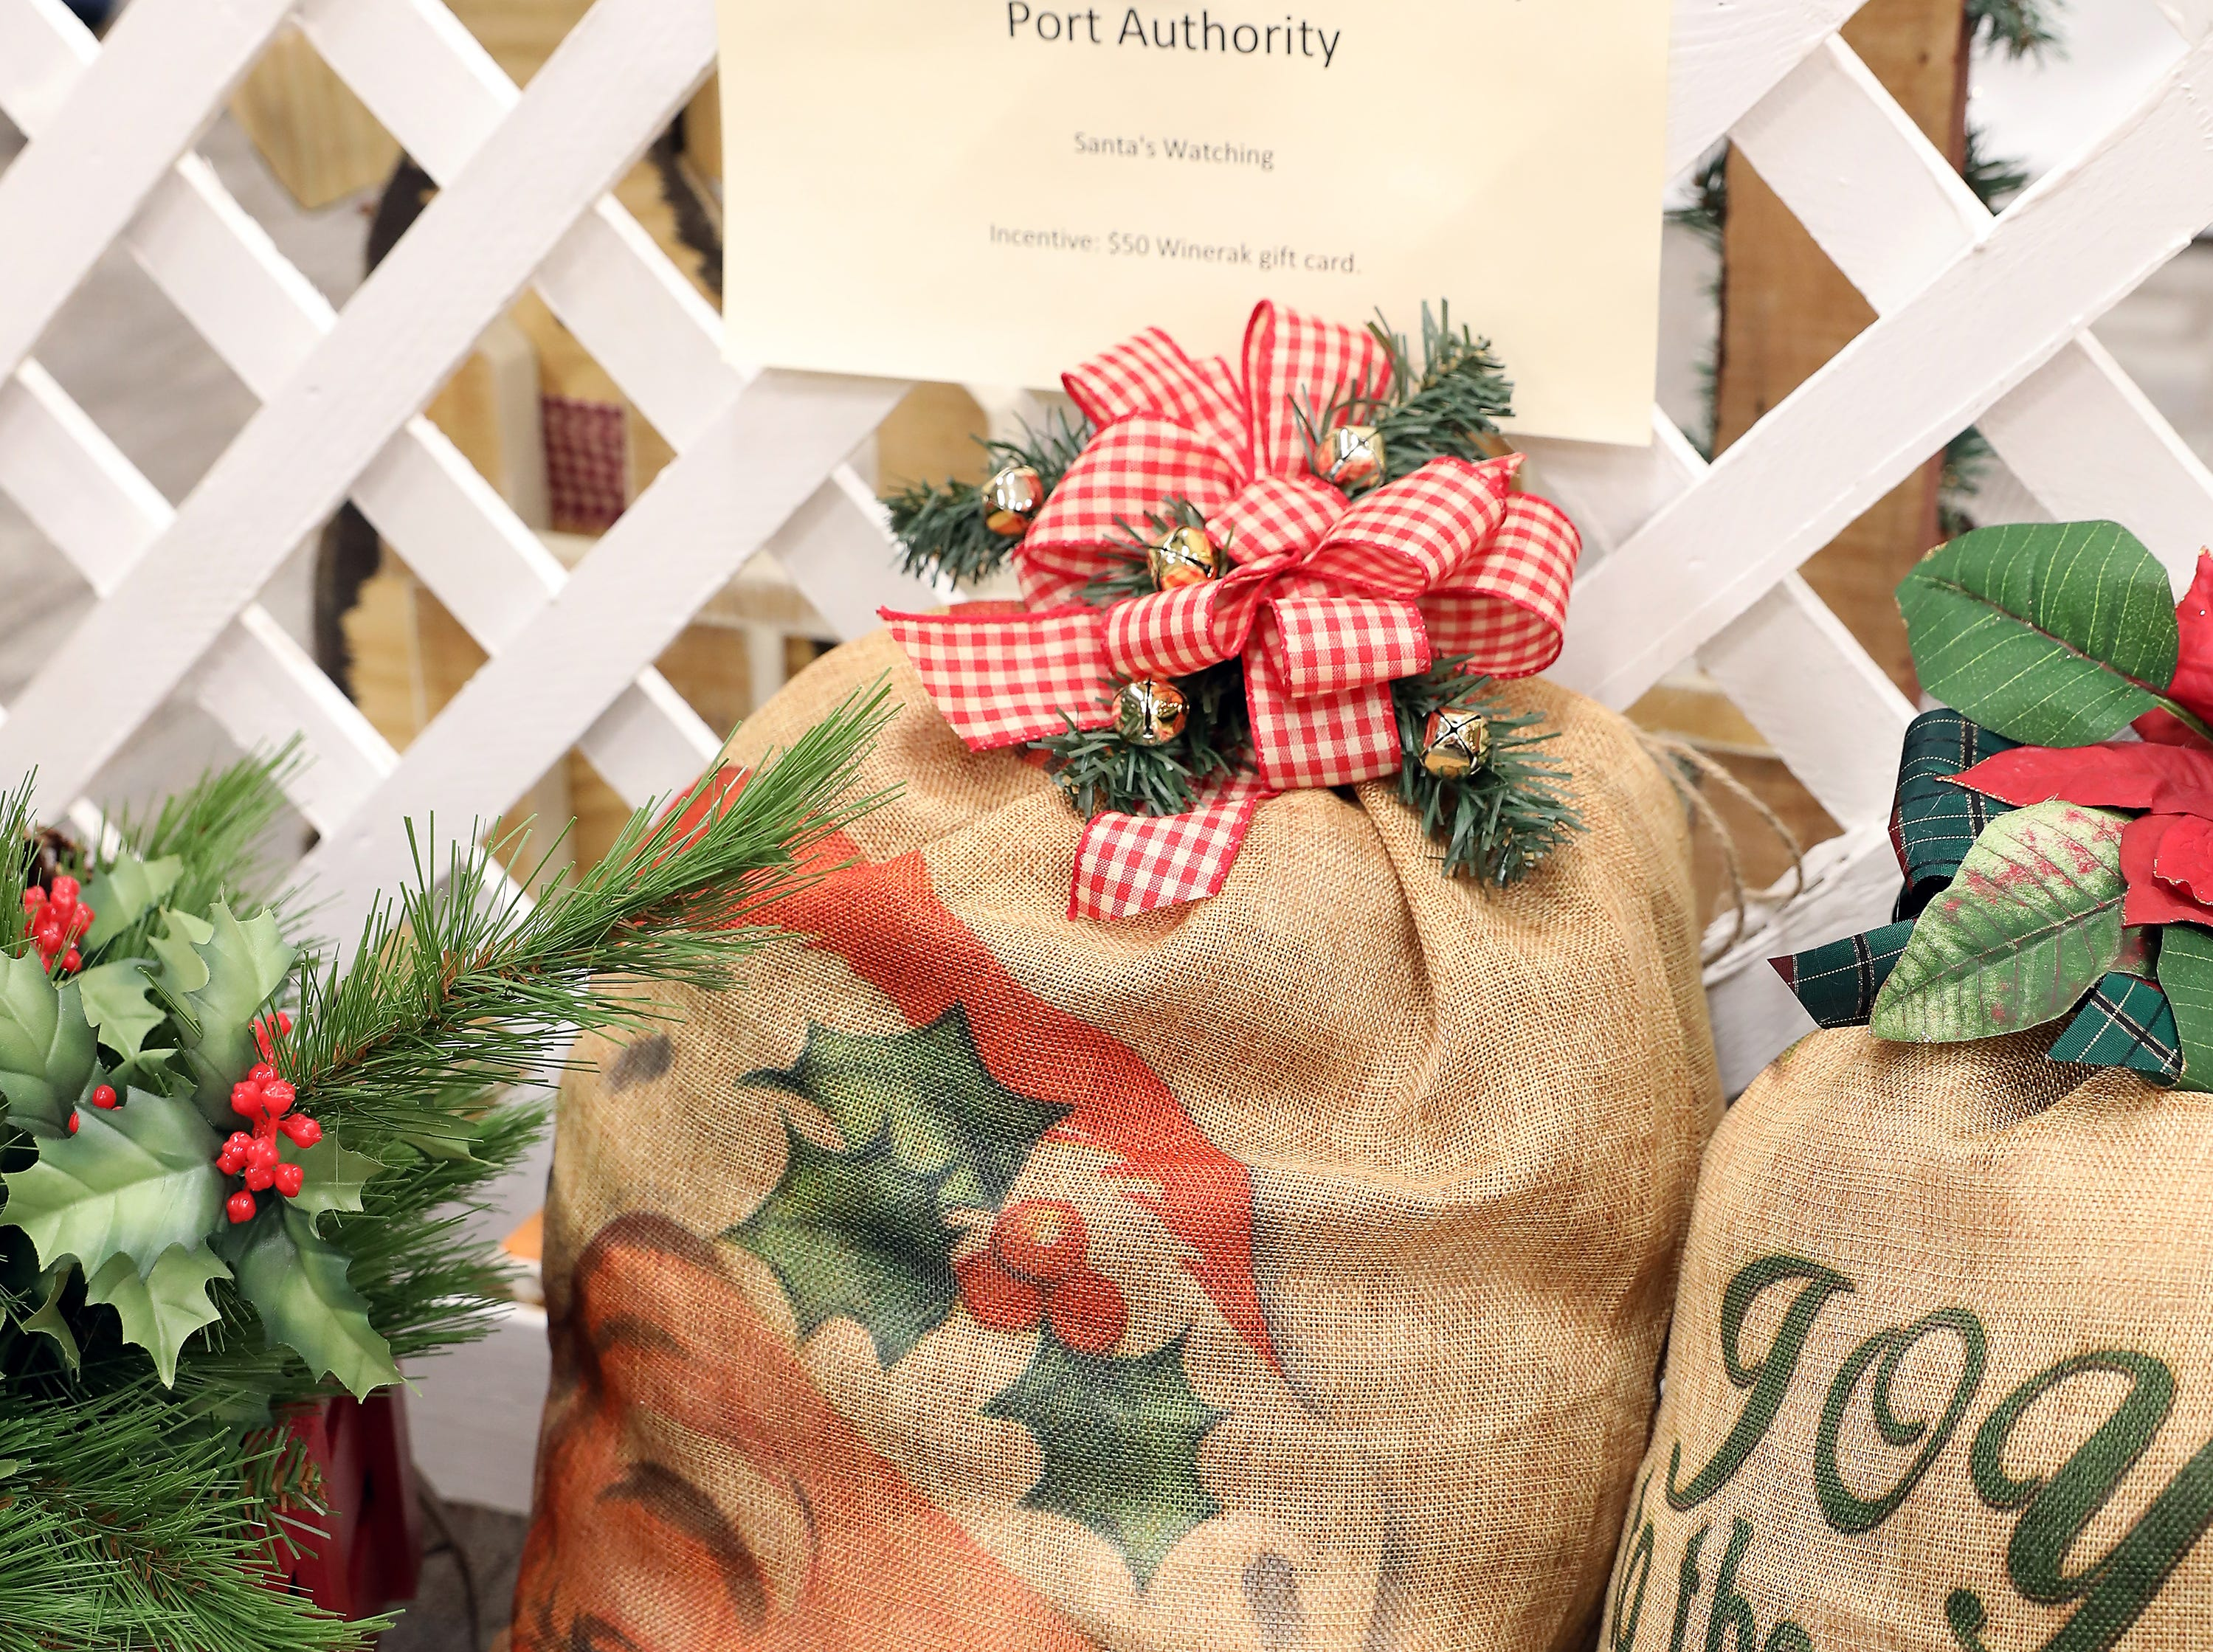 129	2:00 PM	Zanesville-Muskingum County Port Authority	Other	Santa's Watching	Create a classic holiday display with this oversized gift sack.  This draw string closure and traditional Christmas Santa image will be sure to brighten your holidays.		$50 Winerak gift card.